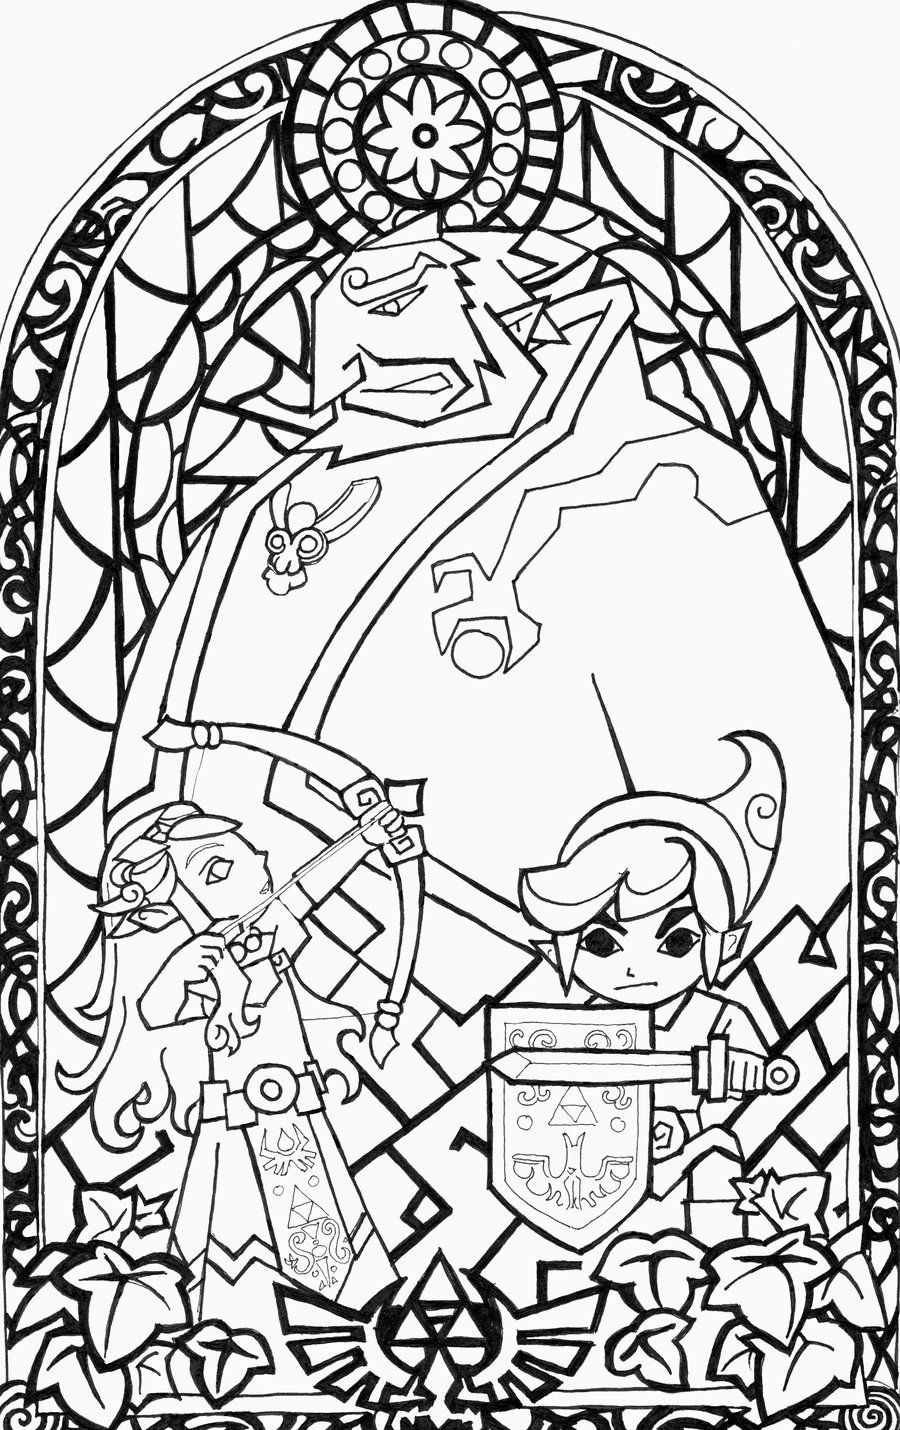 Zelda wind breaker big leaf drawing google search john for Midna coloring pages